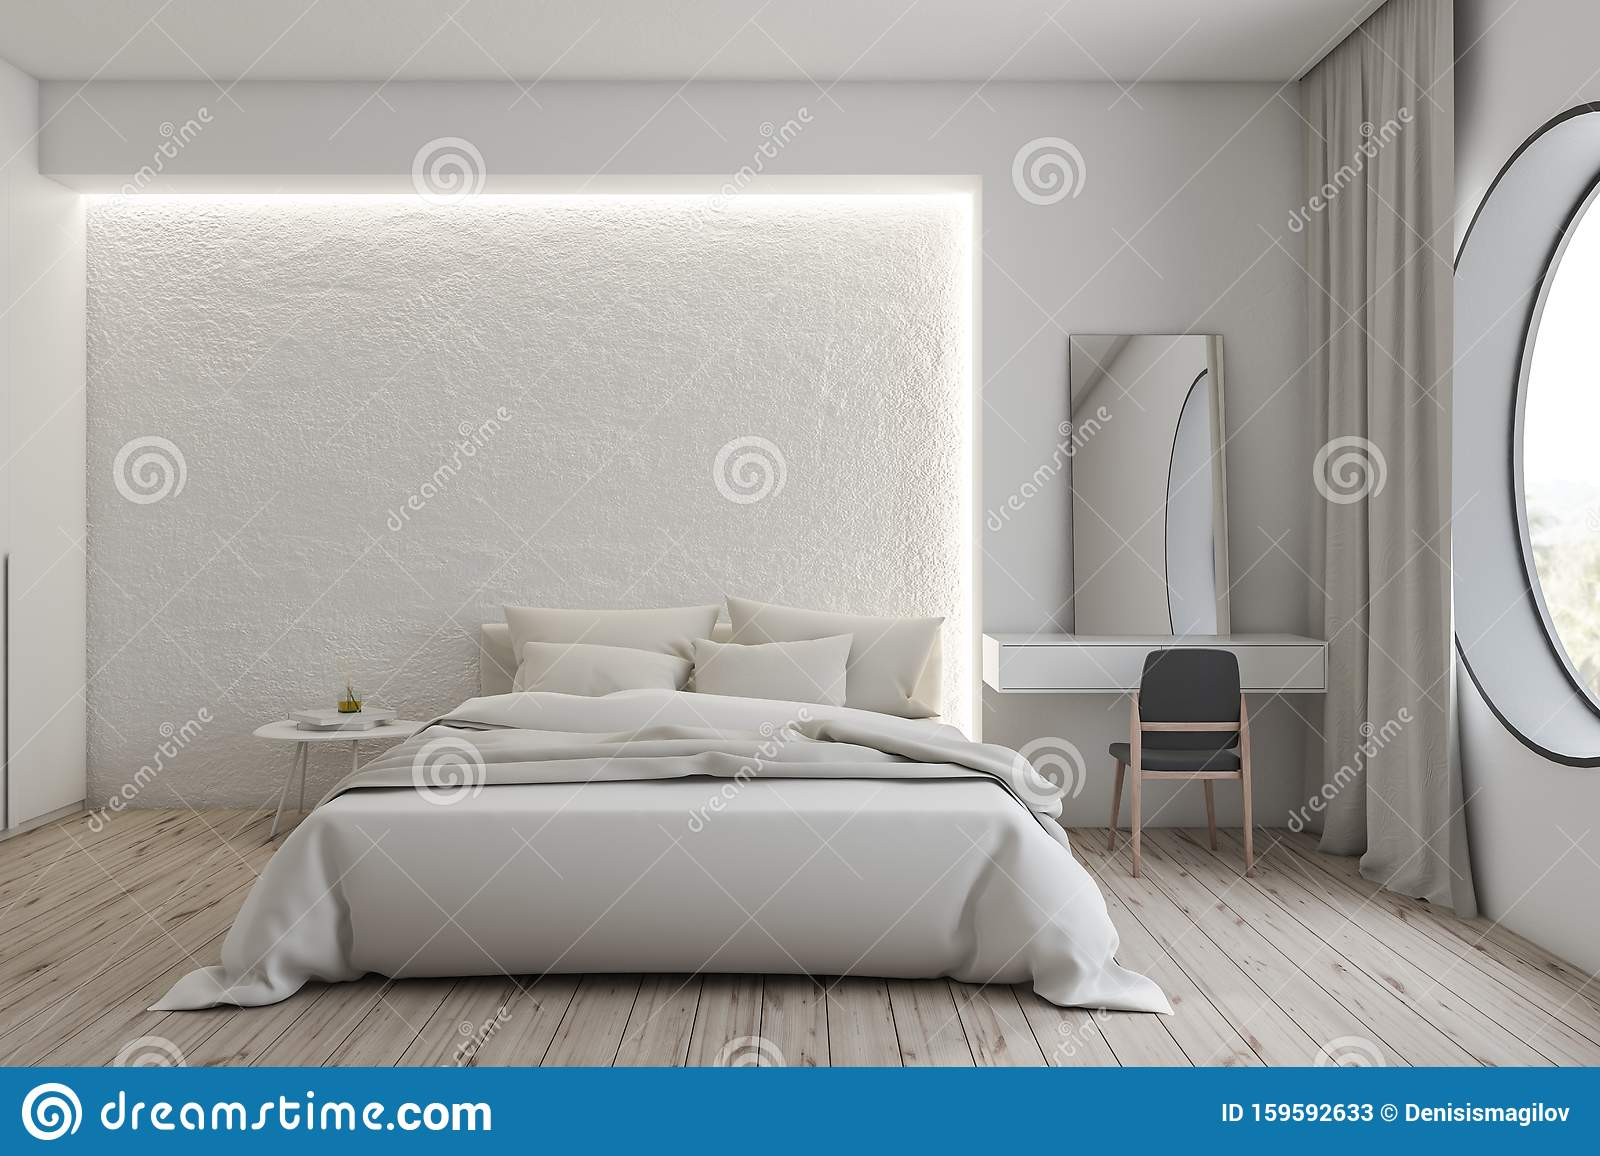 Luxury White Master Bedroom With Makeup Table Stock Illustration Illustration Of Design Comfortable 159592633